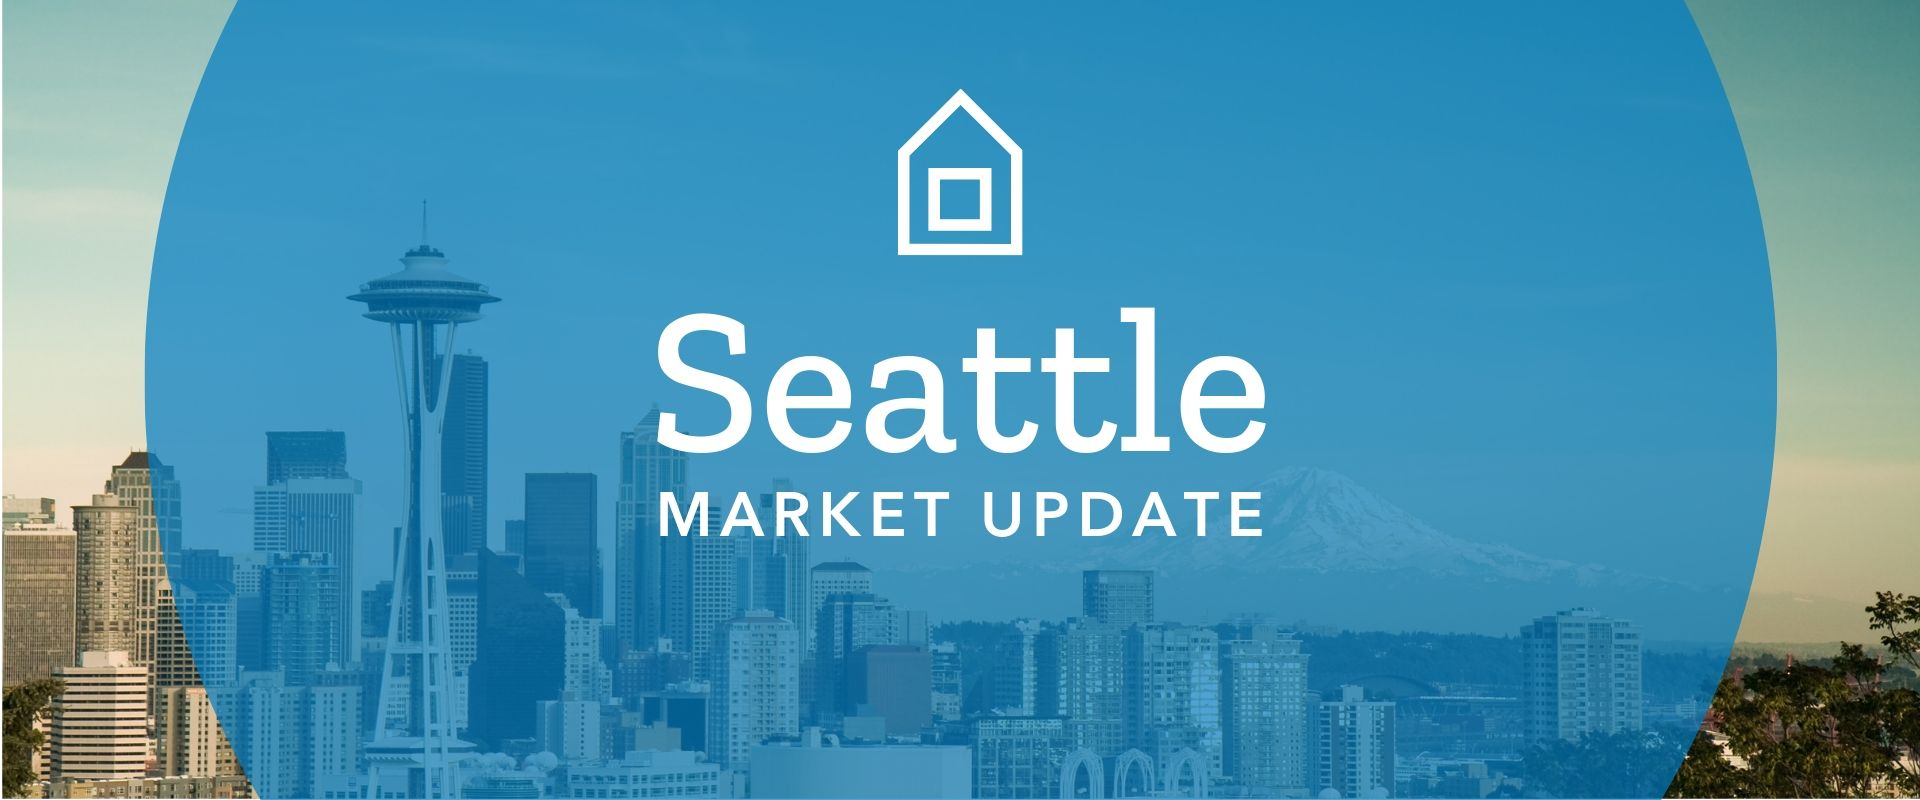 seattle market update splash